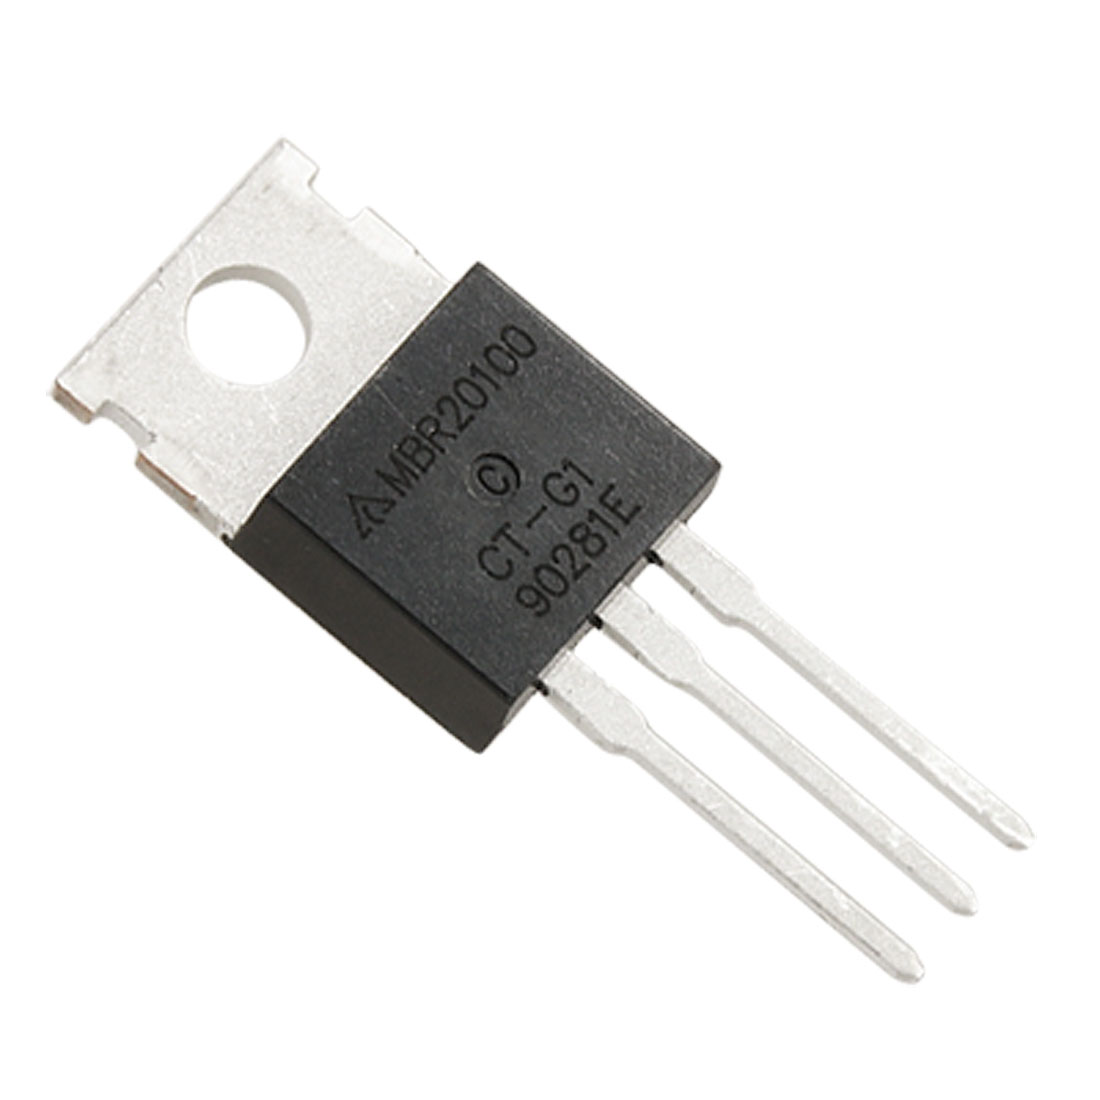 3 Pcs MBR20100CT Replacement Schottky Barrier Rectifier 20A 100V